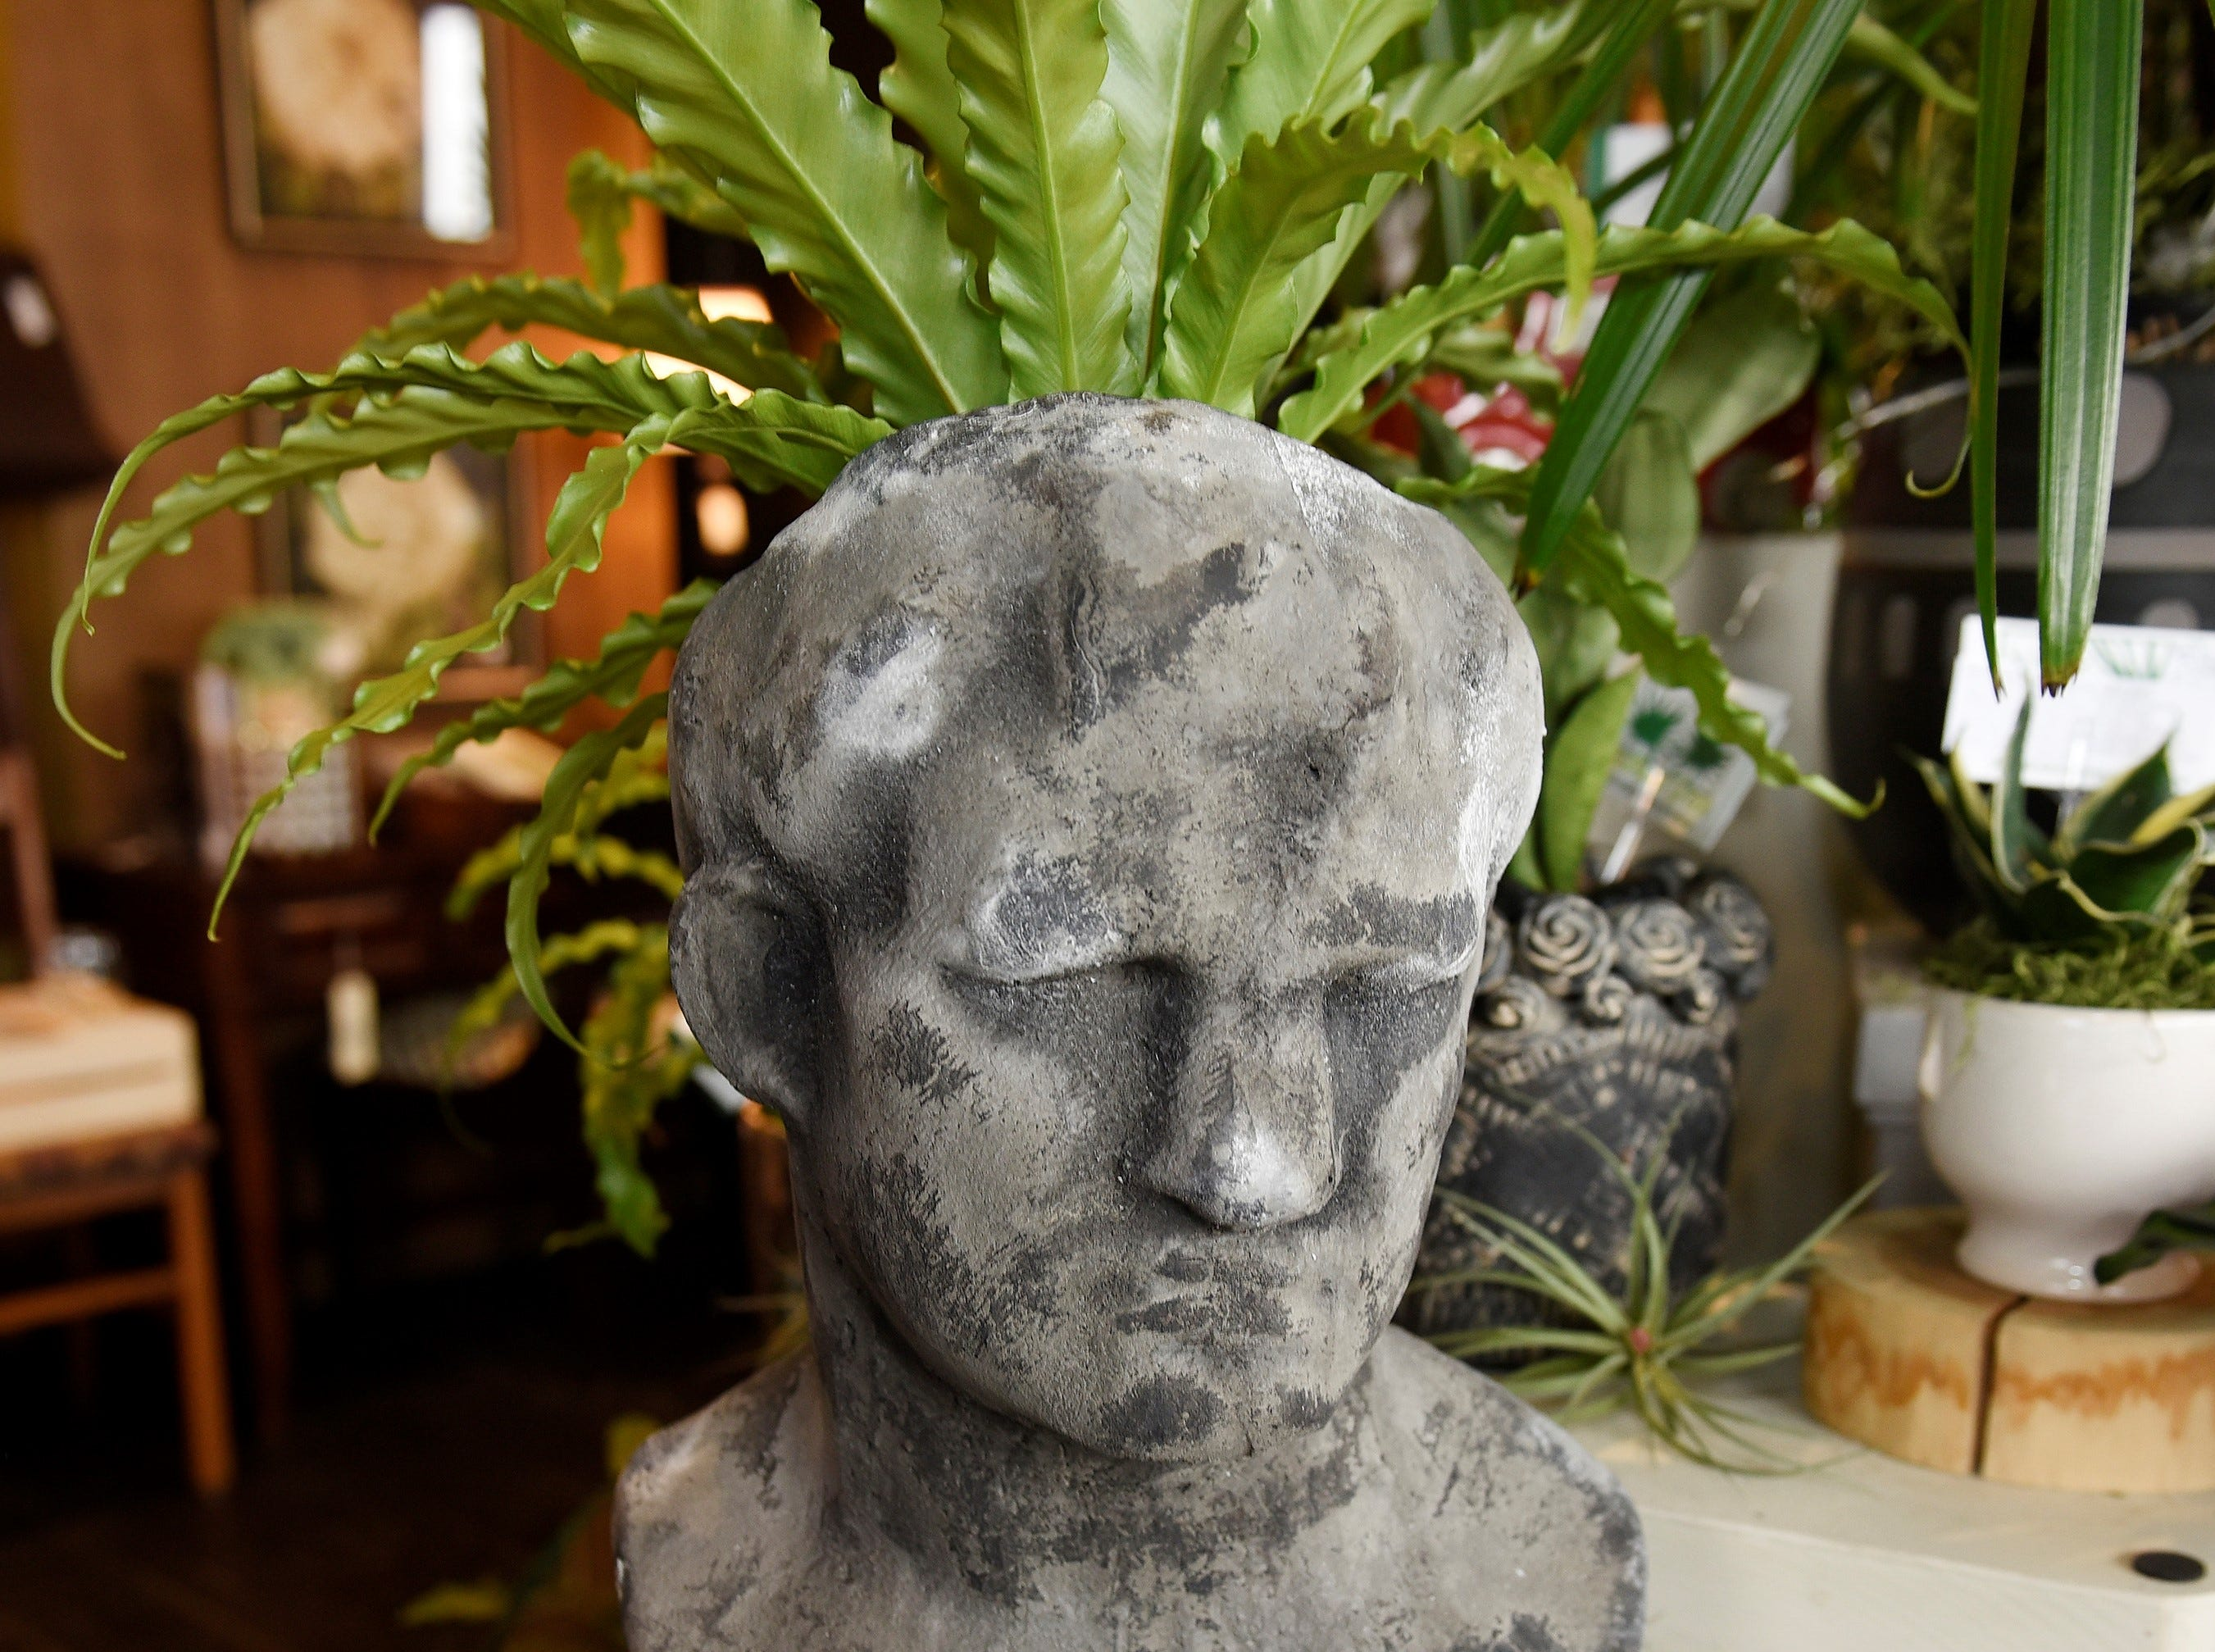 Talk about head games. Head-shaped planters are hot these days and they can display plants indoors or outdoors. At Southern Green, inside Tootsie and Tallulah in downtown Berkley, a cement bust planter makes a statement with a Bird's Nest Fern in it.